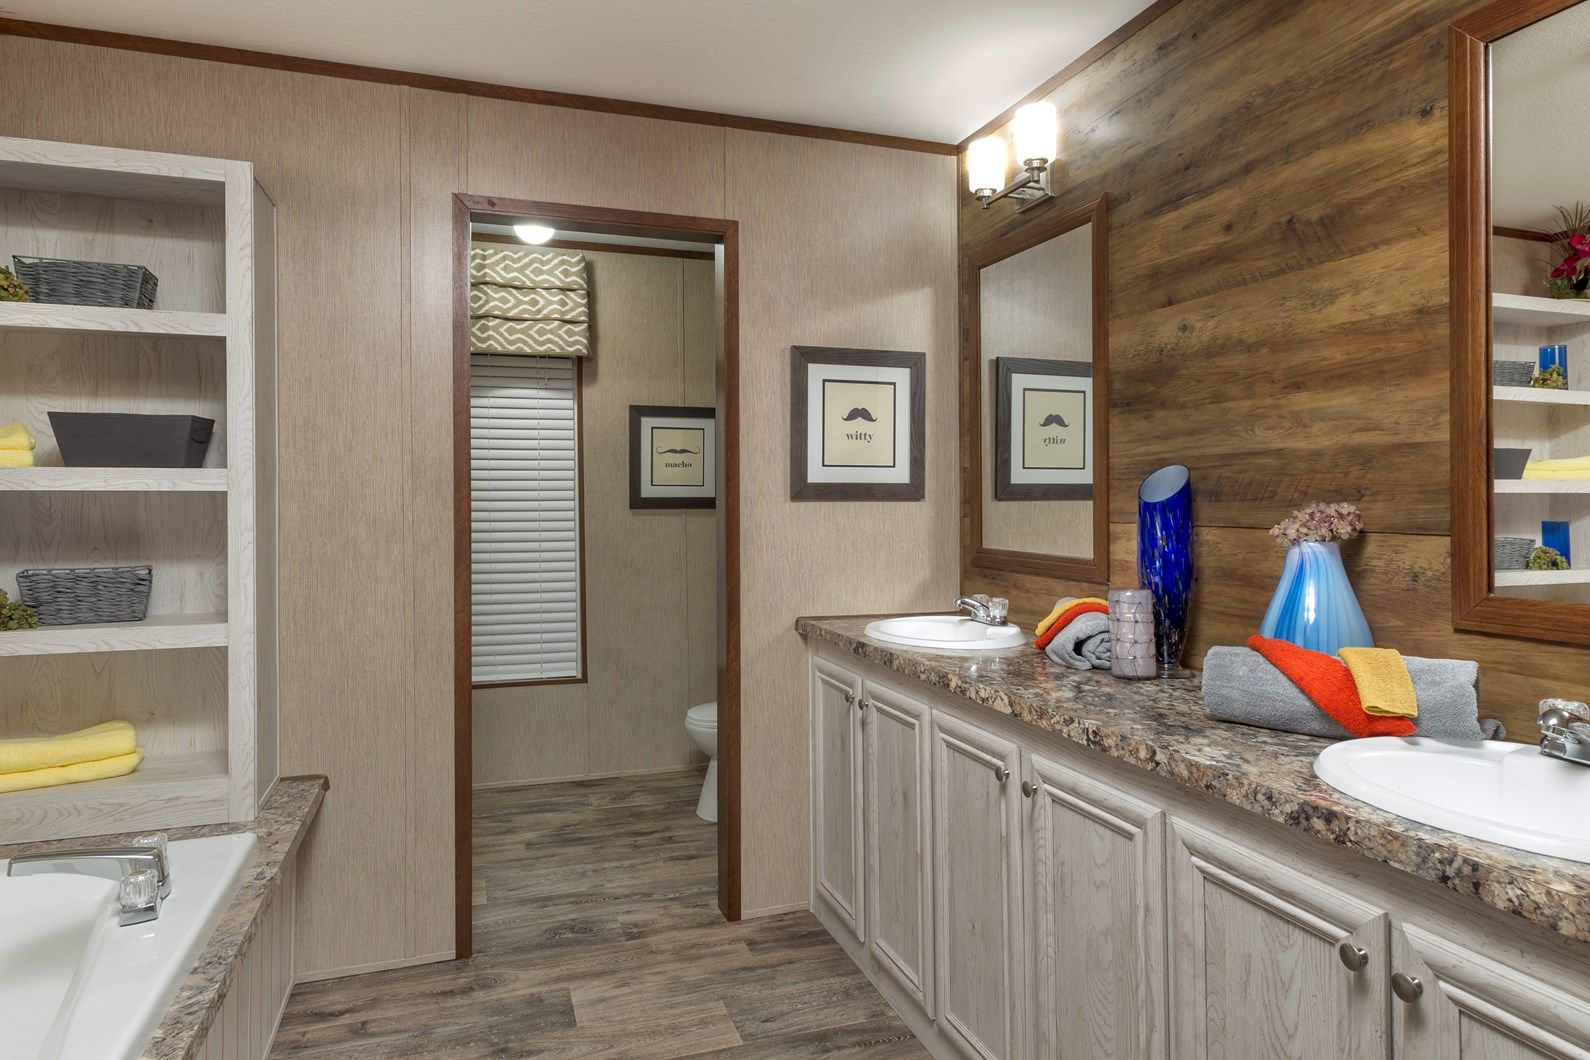 5 Bedroom Mobile Homes For Sale Near Me